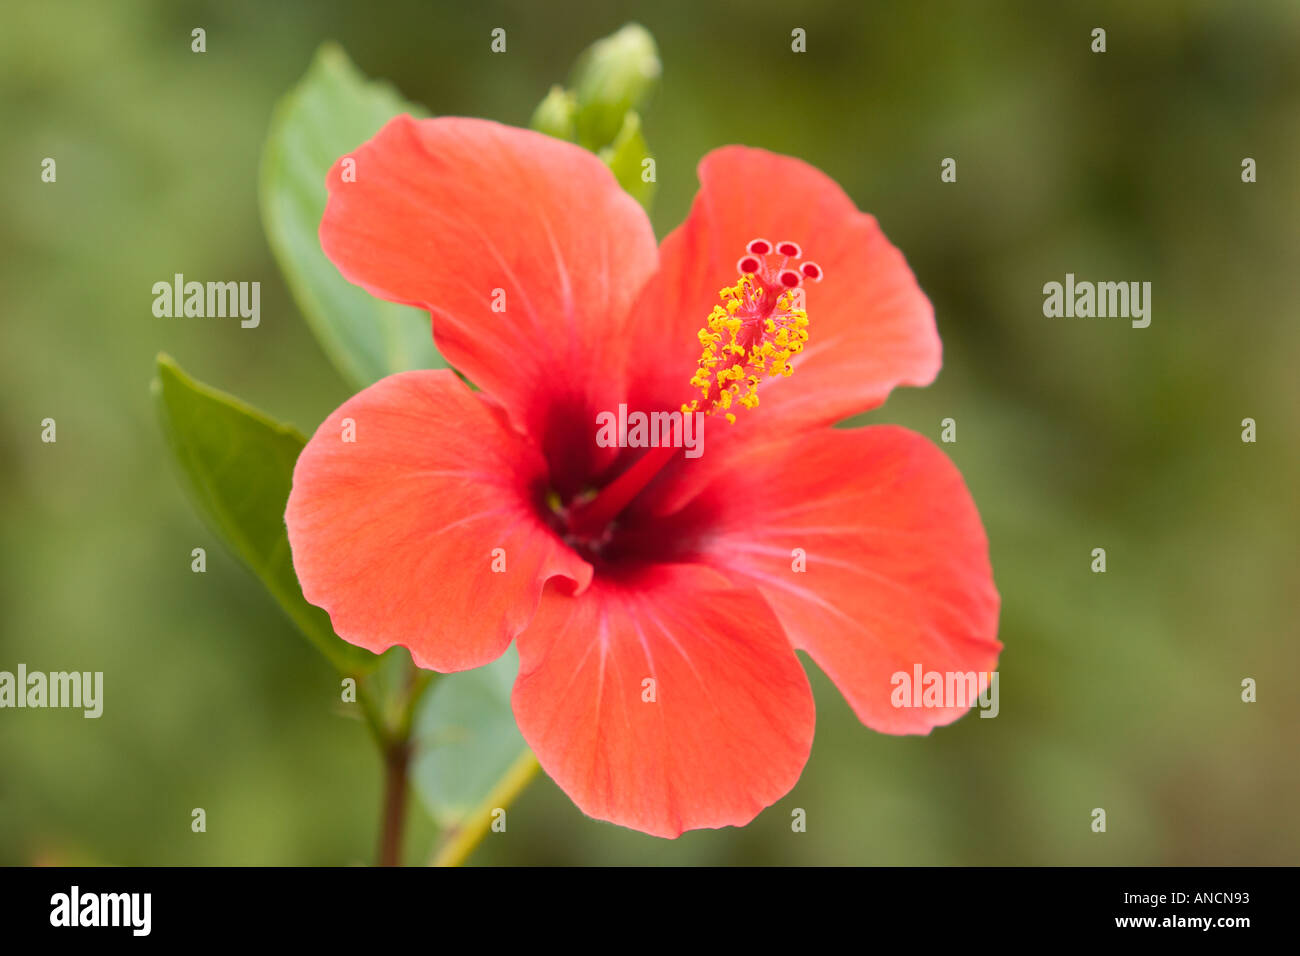 Hibiscus flower scientific name hibiscus stock photos hibiscus red hibiscus flower scientific name hibiscus rosa sinensis corfu island greece izmirmasajfo